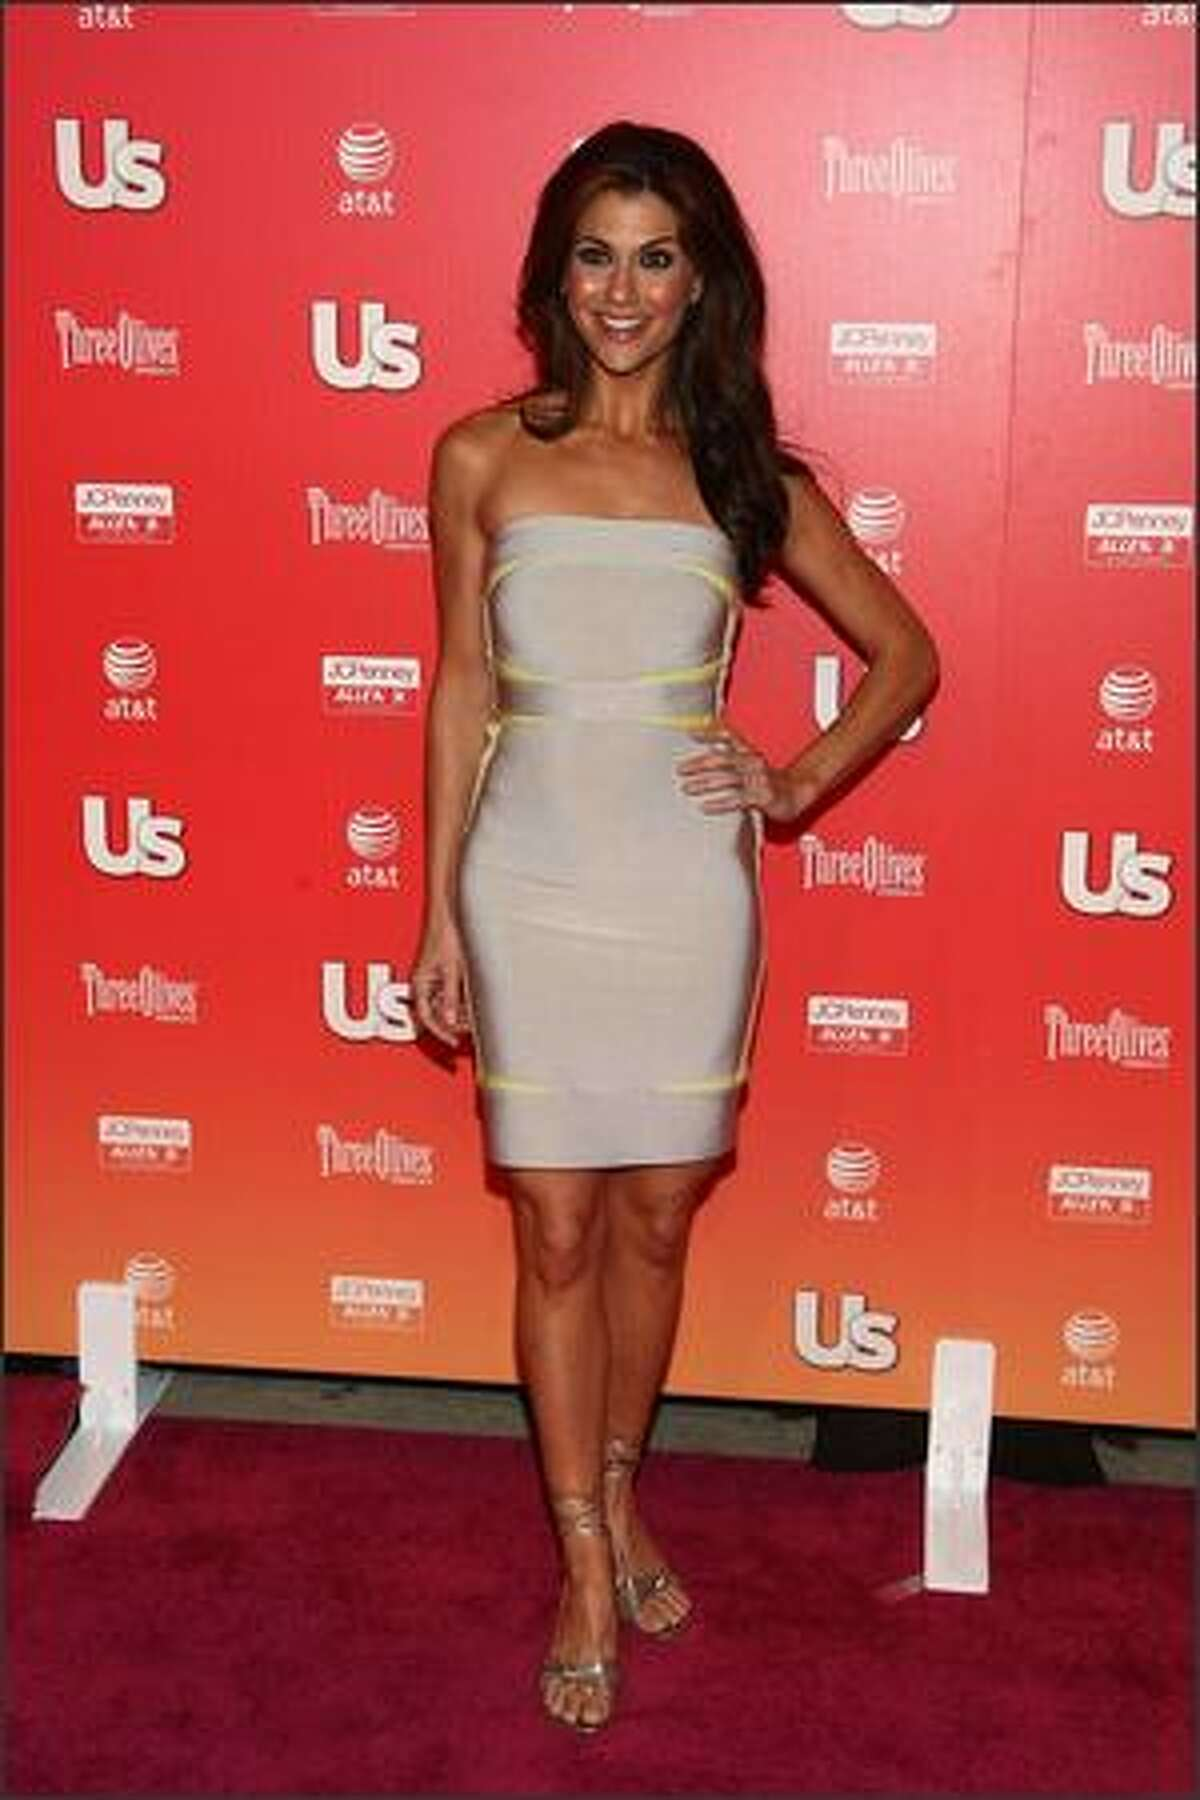 TV personality Samantha Harris arrives at the Us Weekly Hot Hollywood Party held at My House nightclub in Los Angeles.